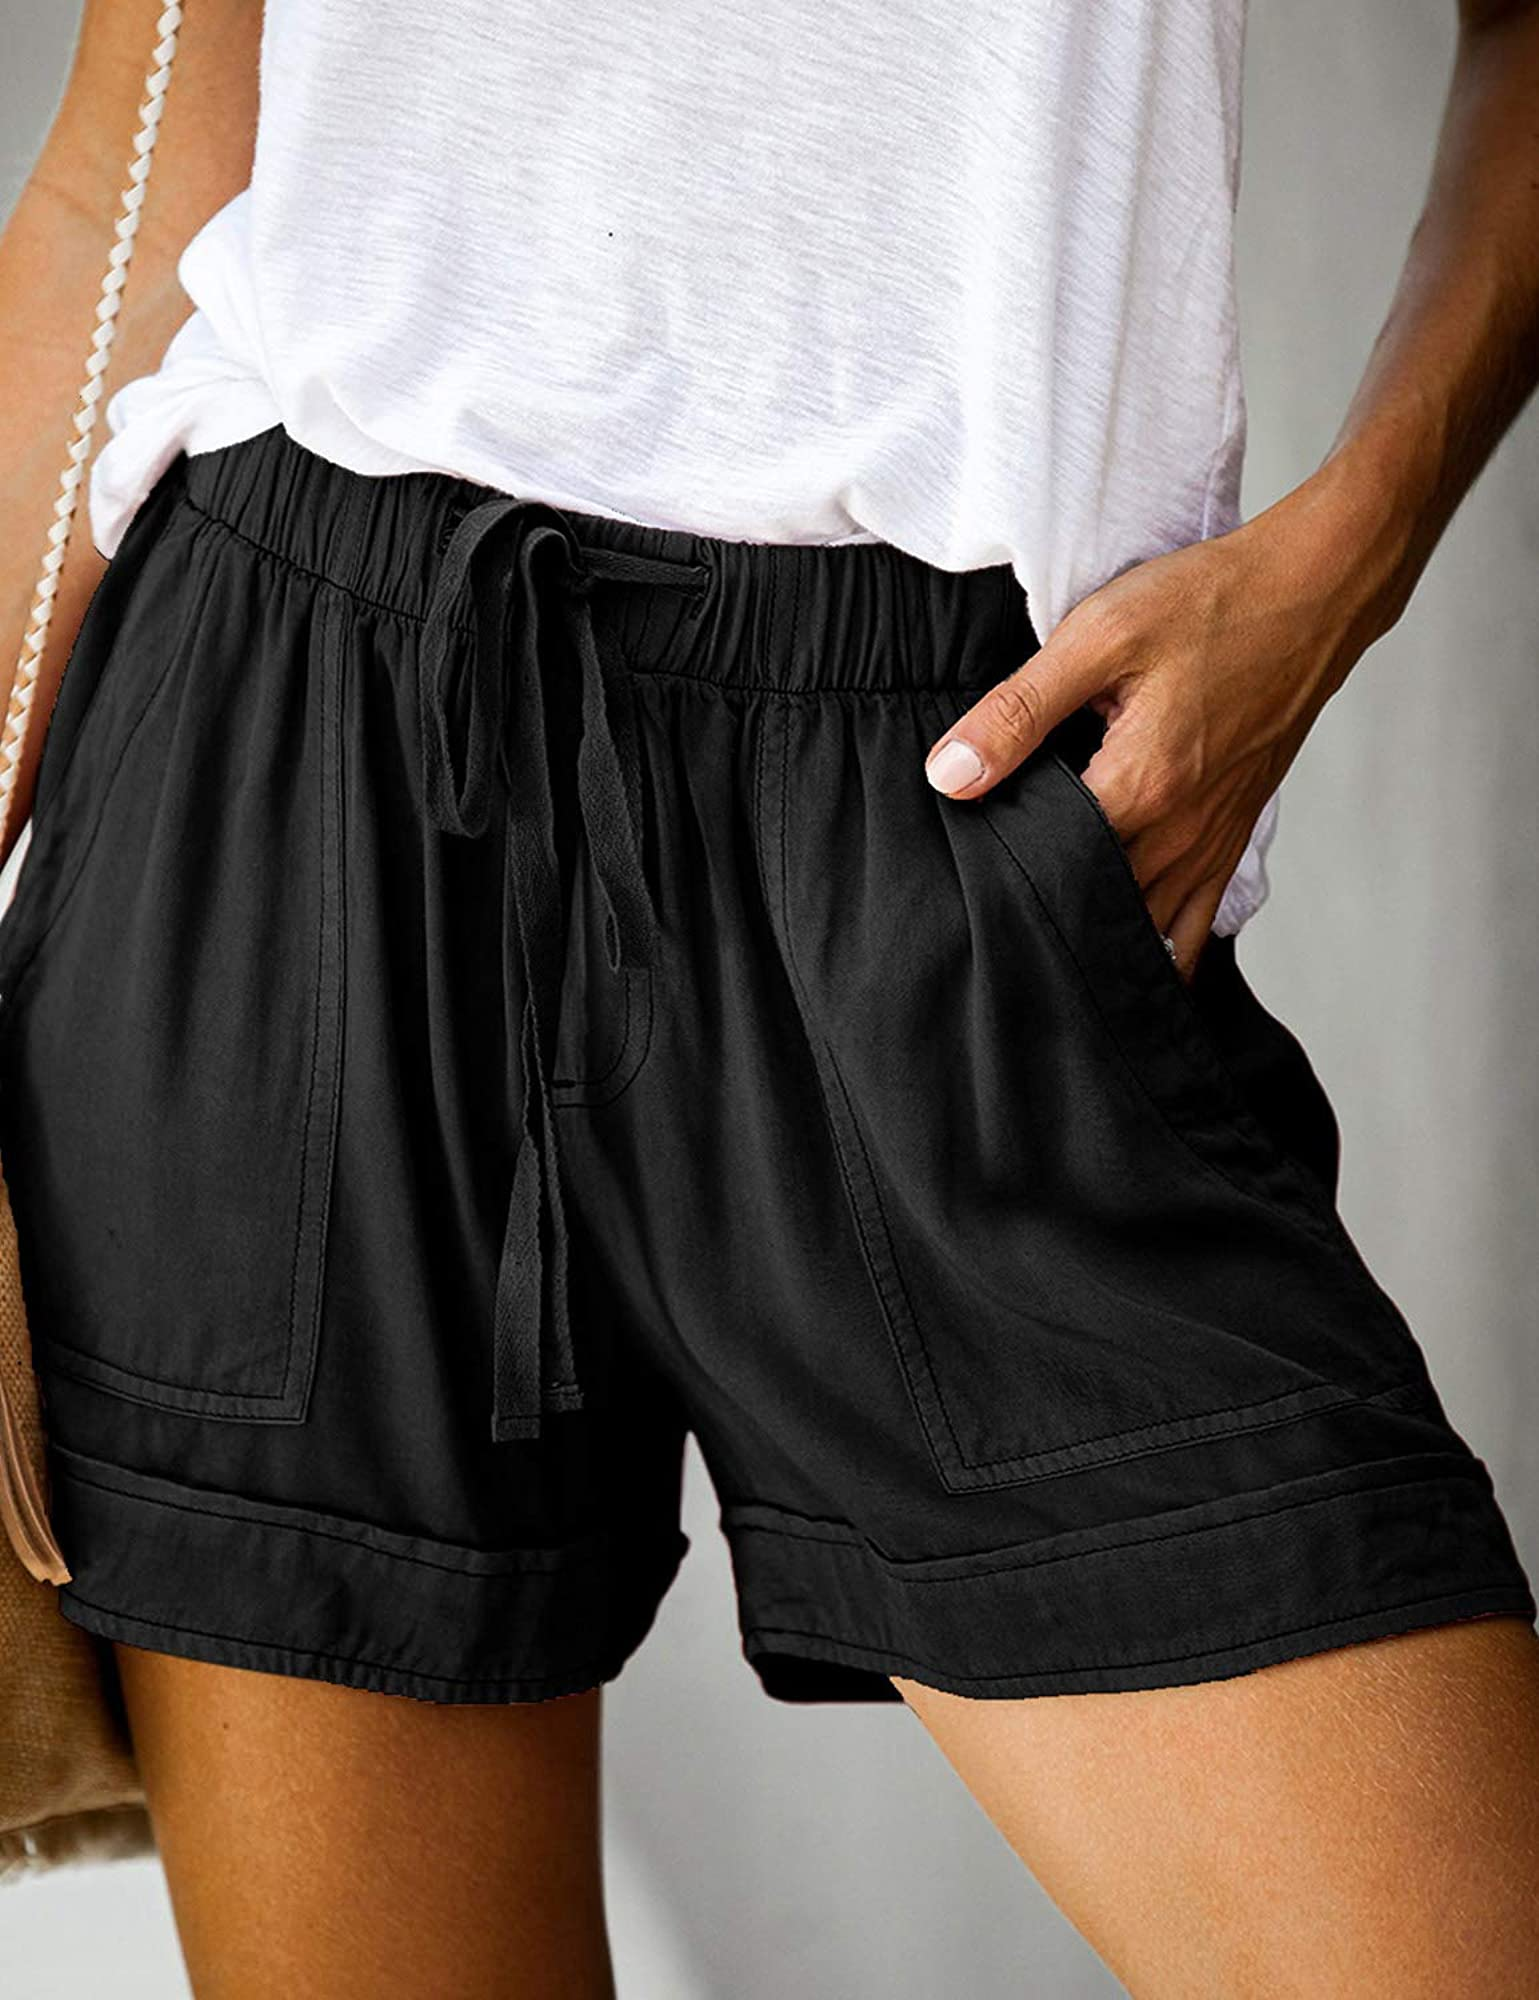 Women's Loose Fit Elastic Waist Band Shorts